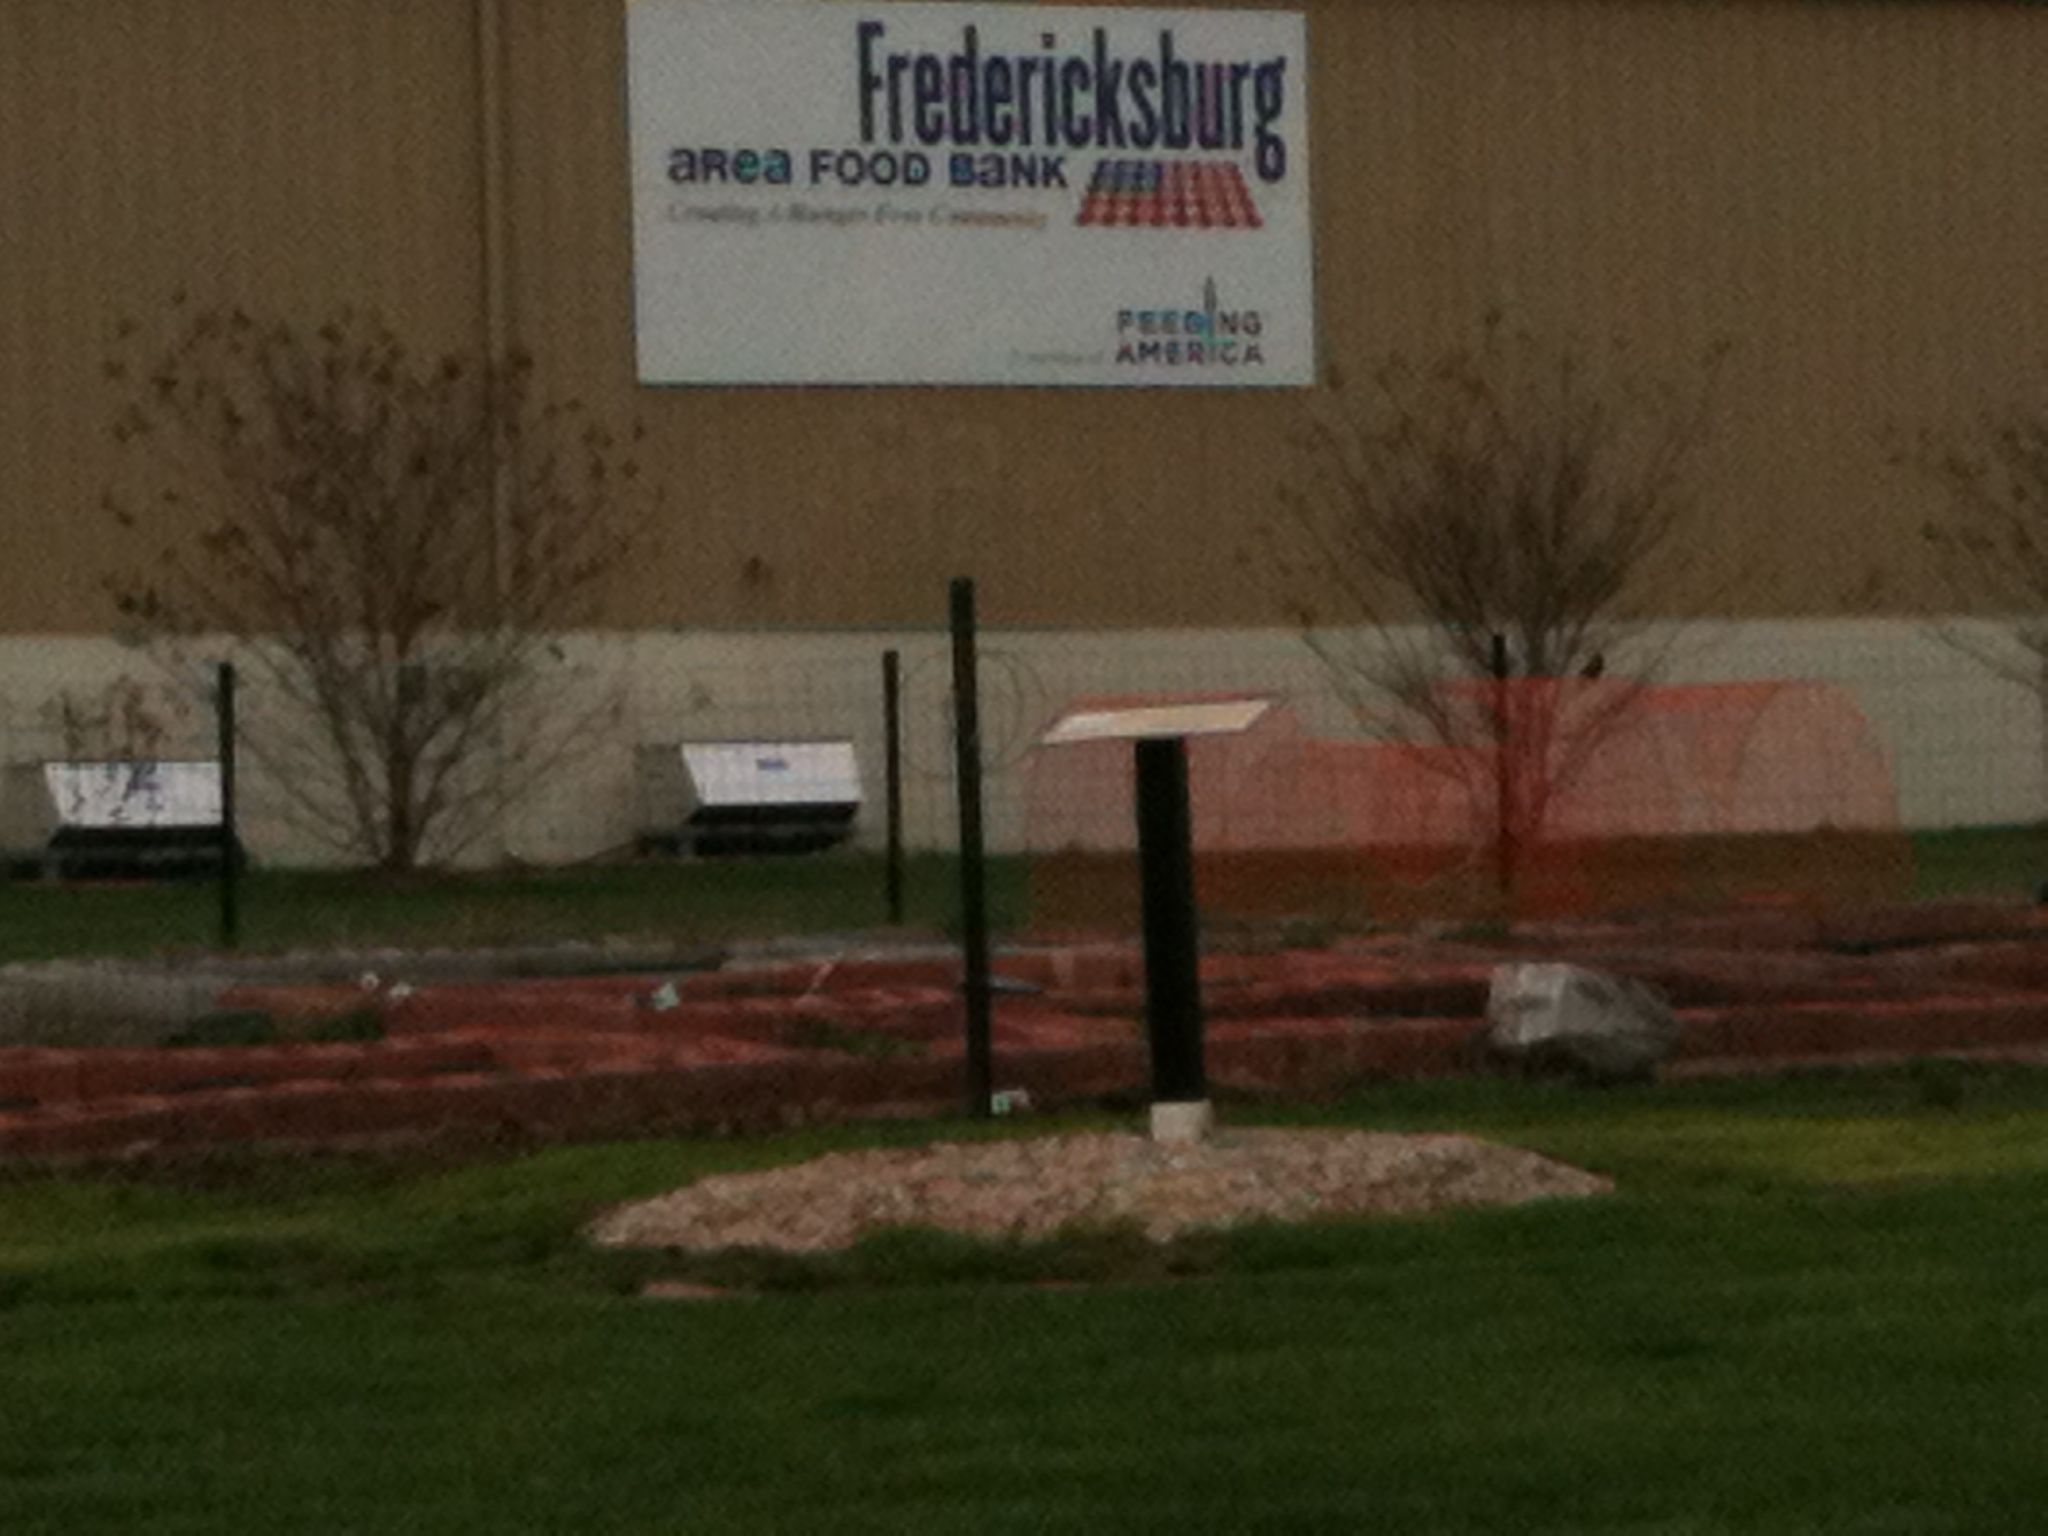 We are an agency of the Fredericksburg Area Food Bank, a Feeding America Food Bank.